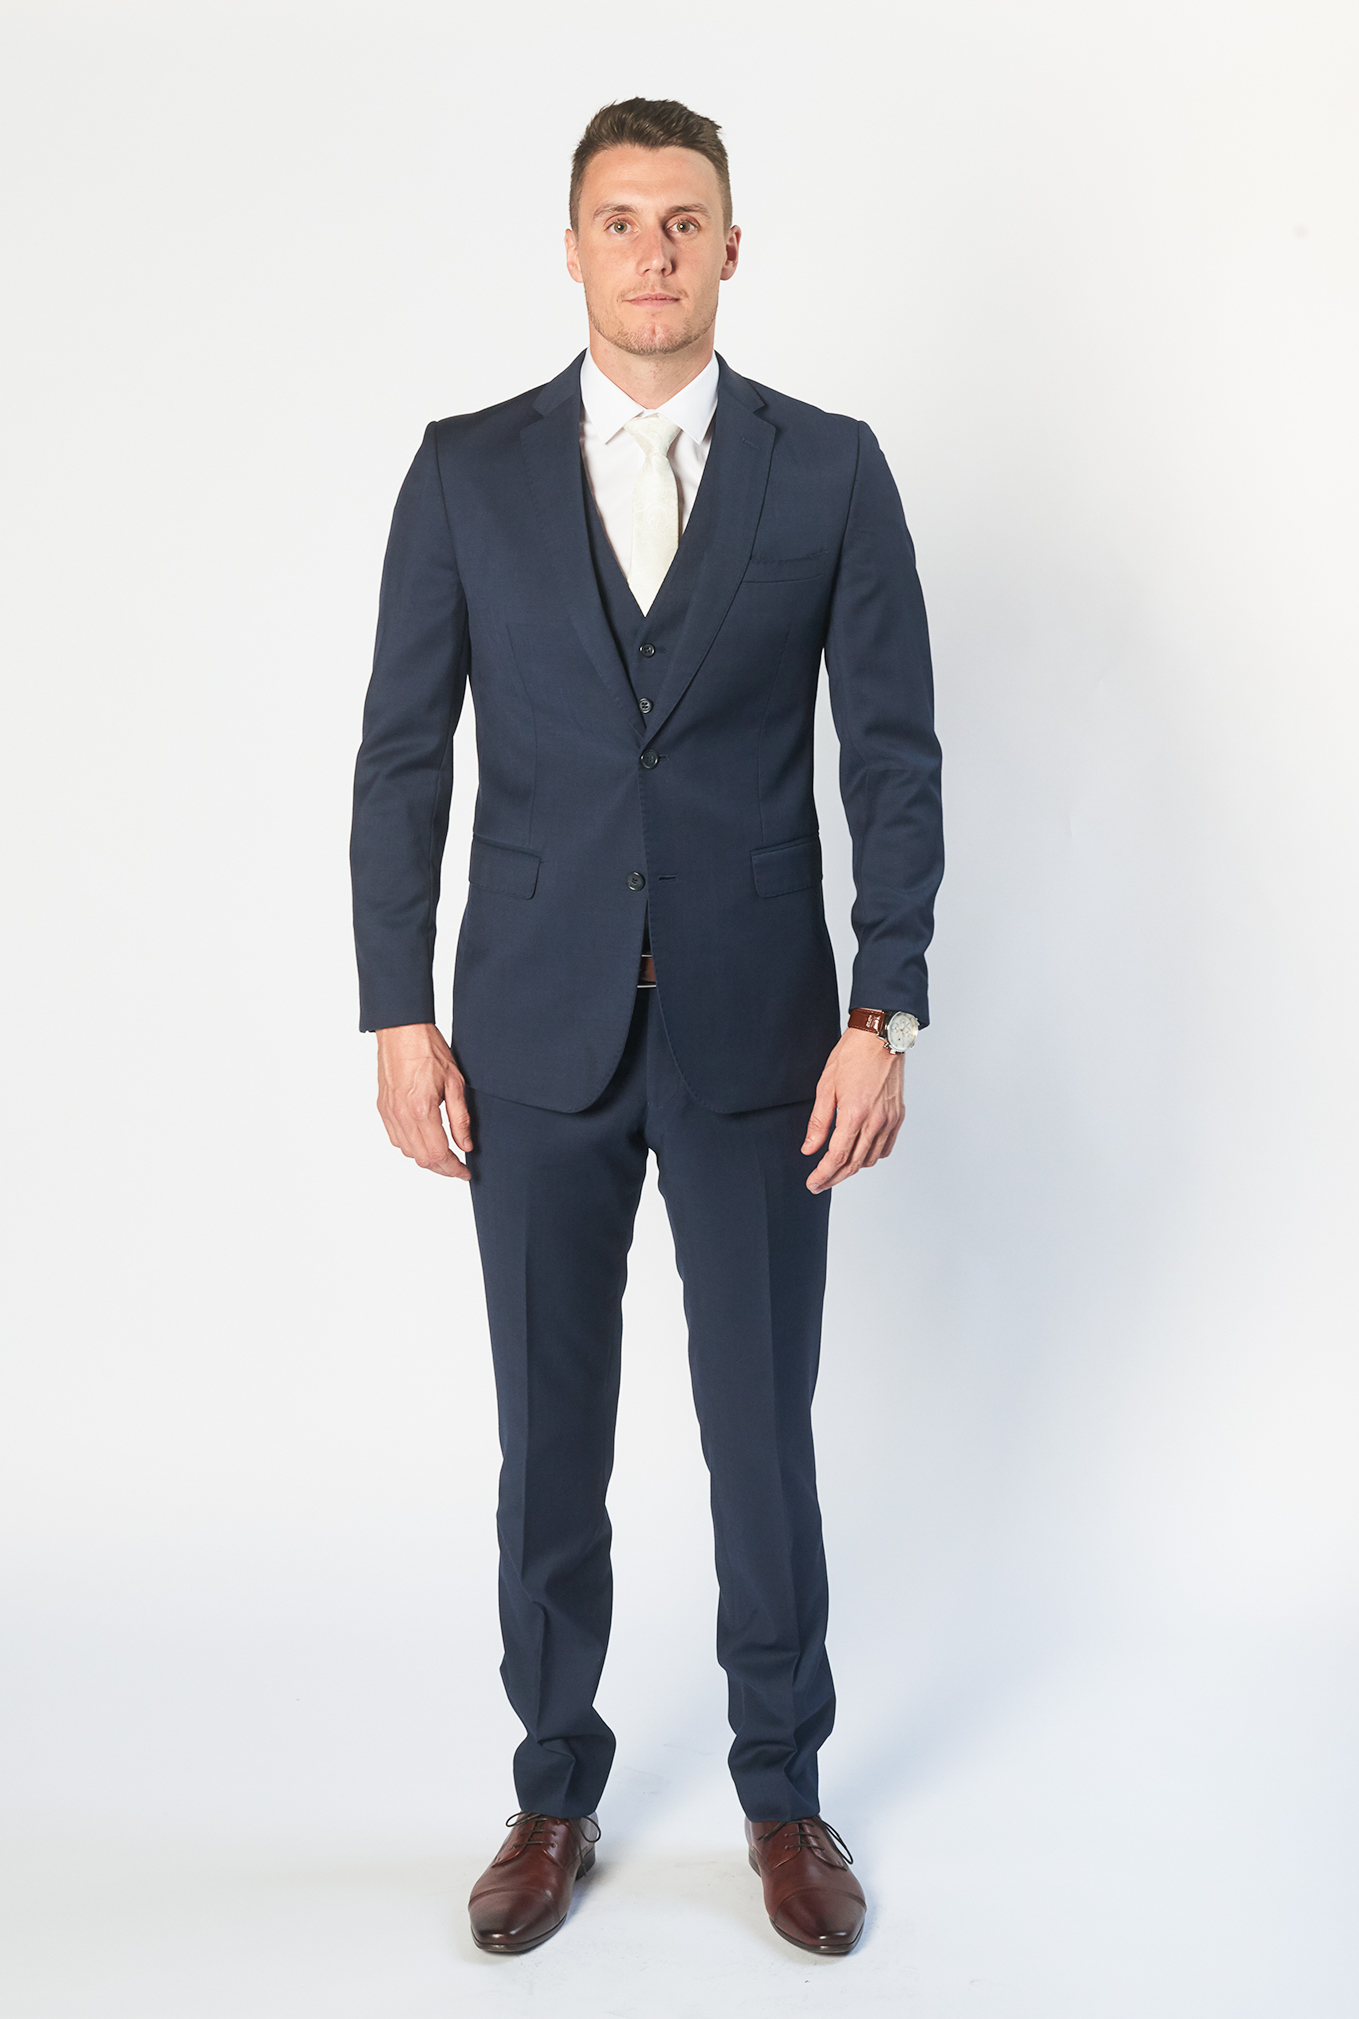 The Icon navy blue suit for hire or sale